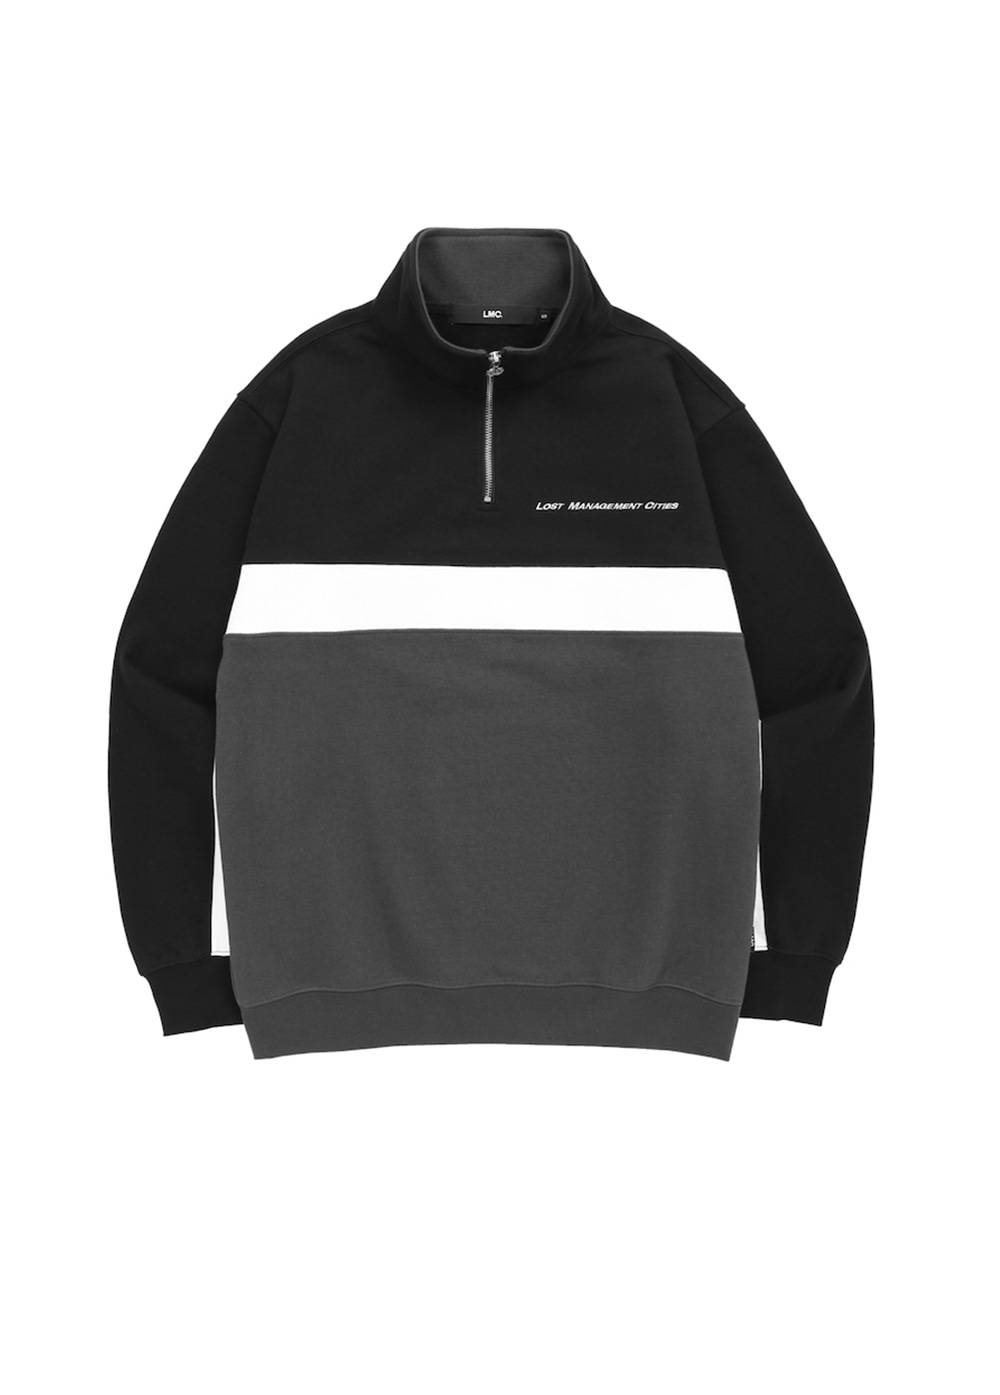 LMC TRI COLOR QUARTER ZIP SWEATSHIRT black